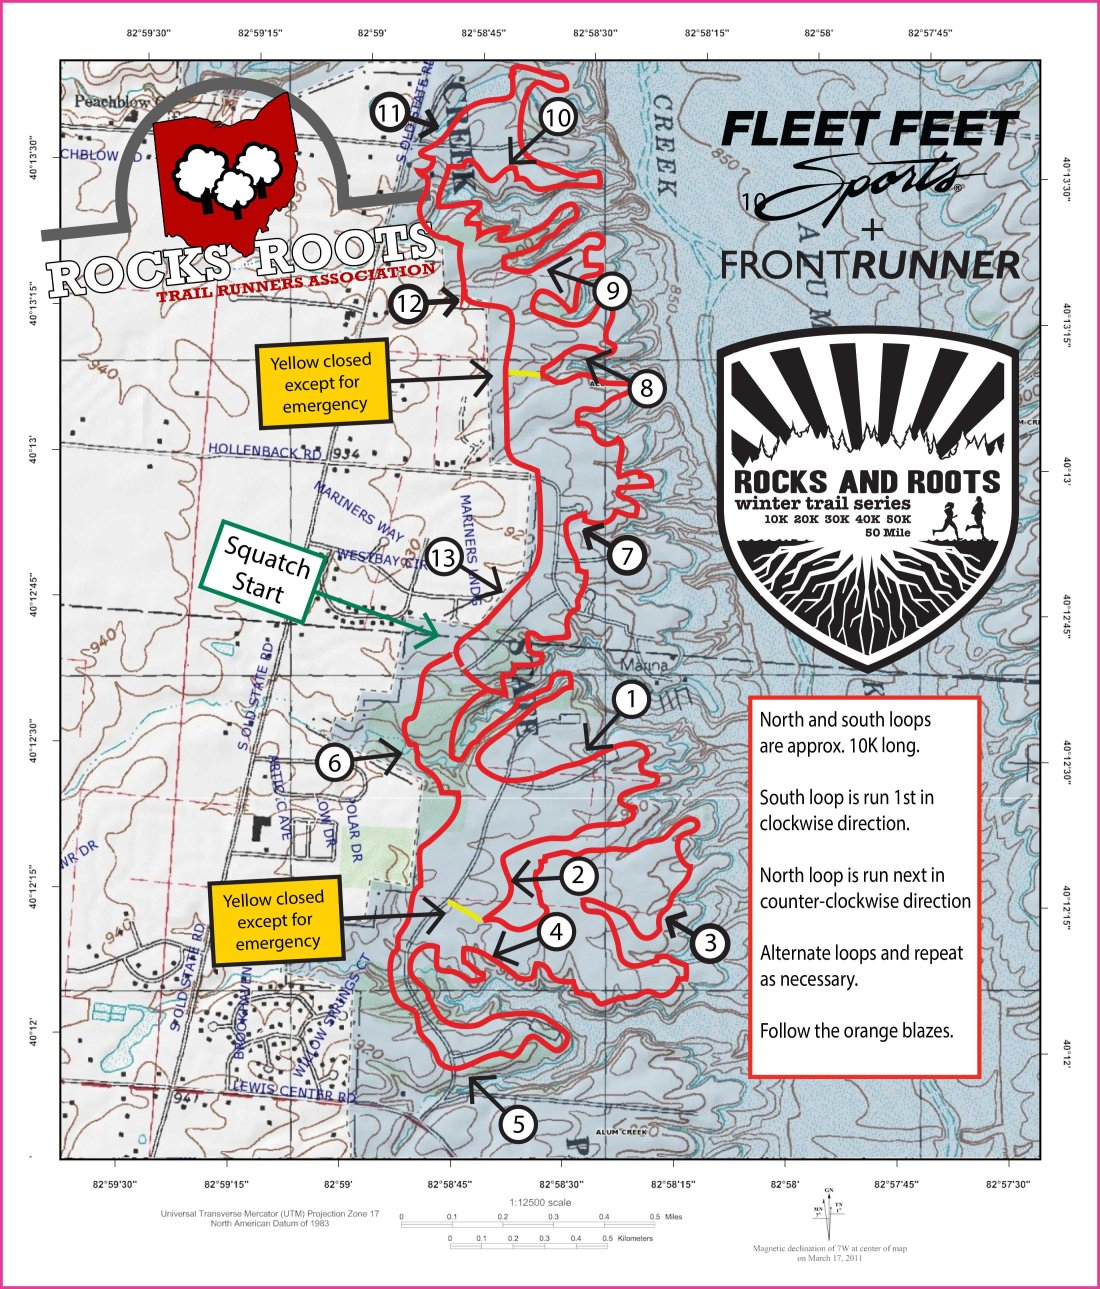 RRTRA TRAIL MAP Winter Series 2017 SCW NCCW